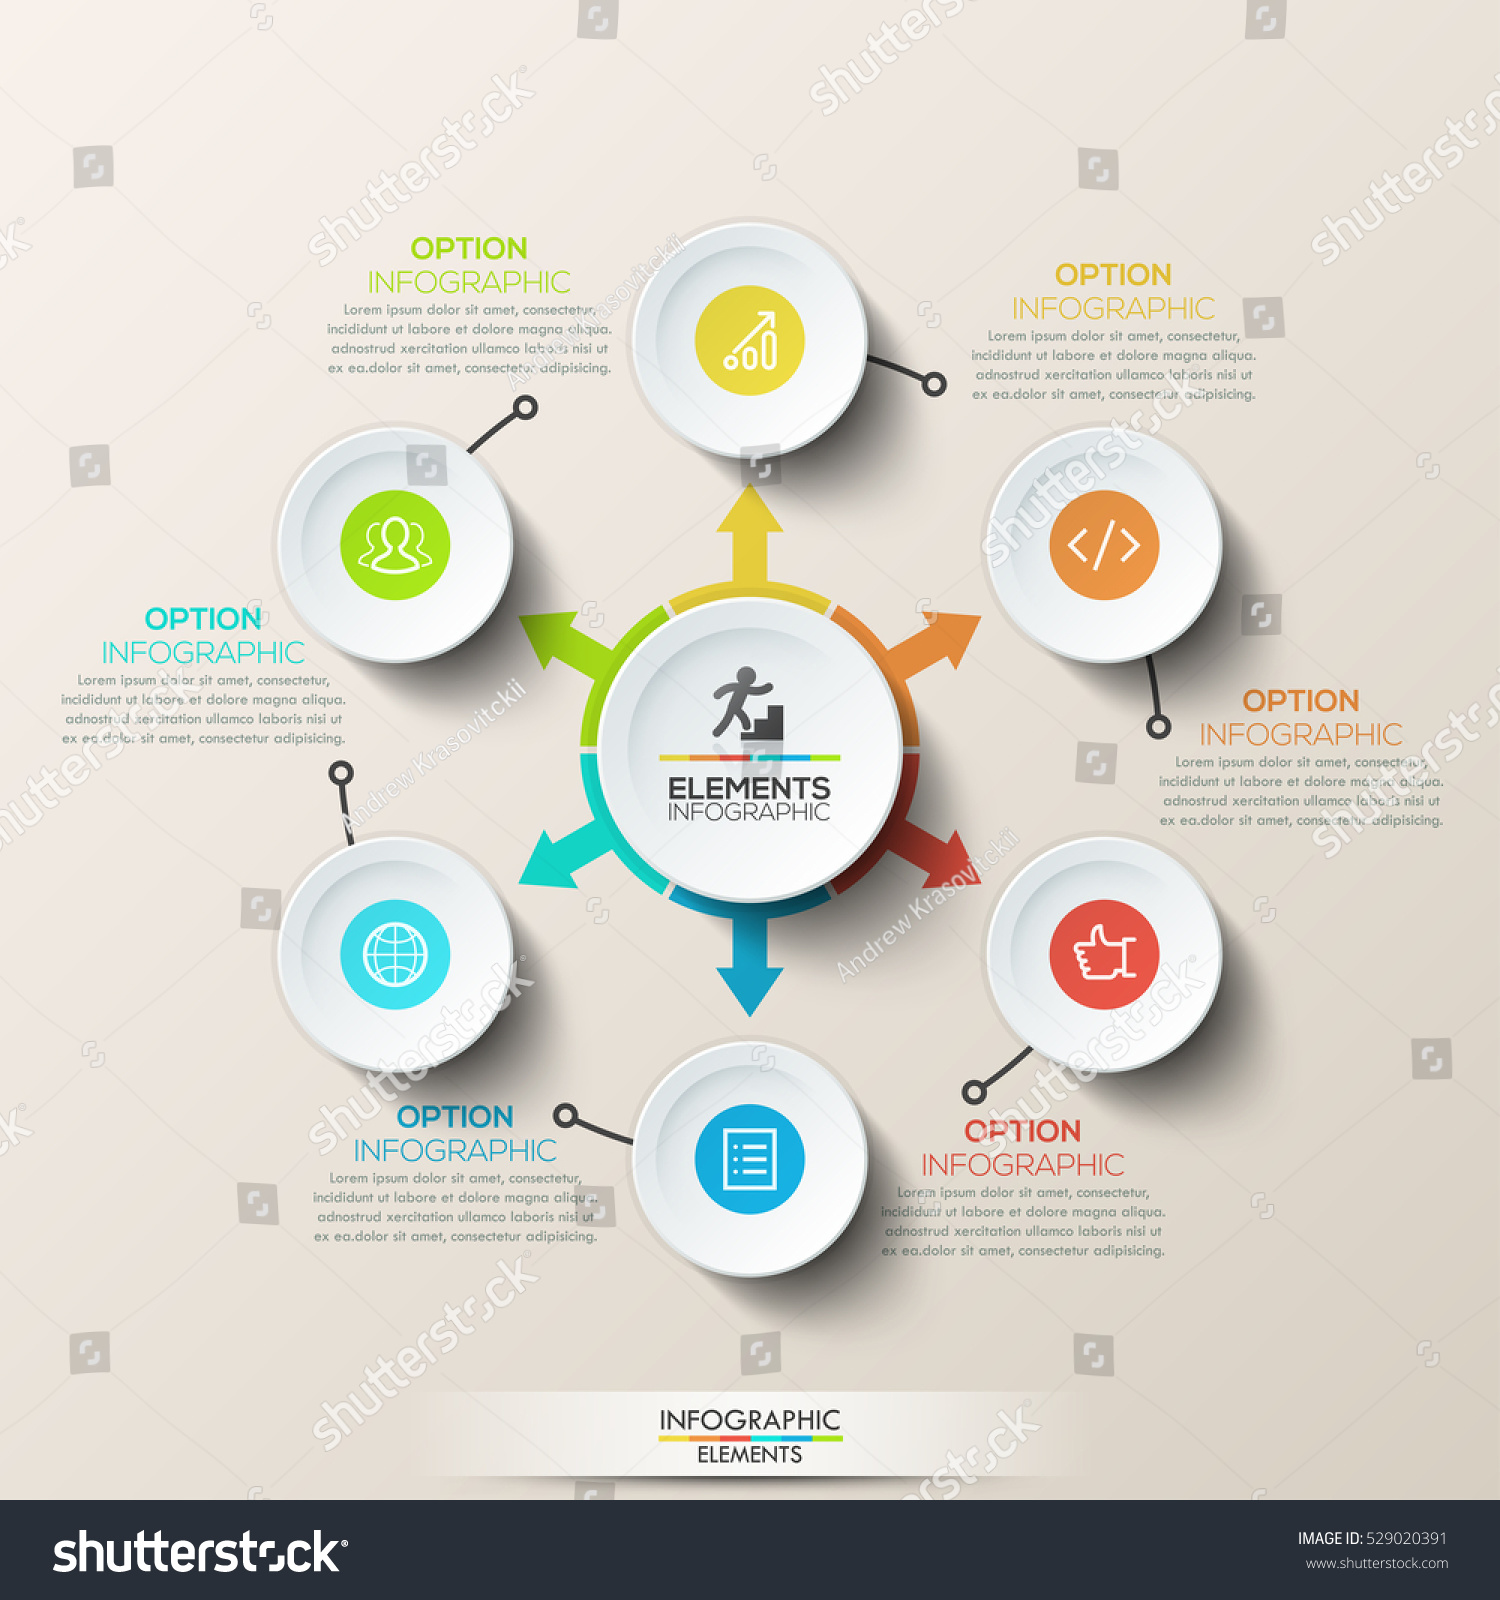 Modern Infographic Design Template Round Diagram Stock ...